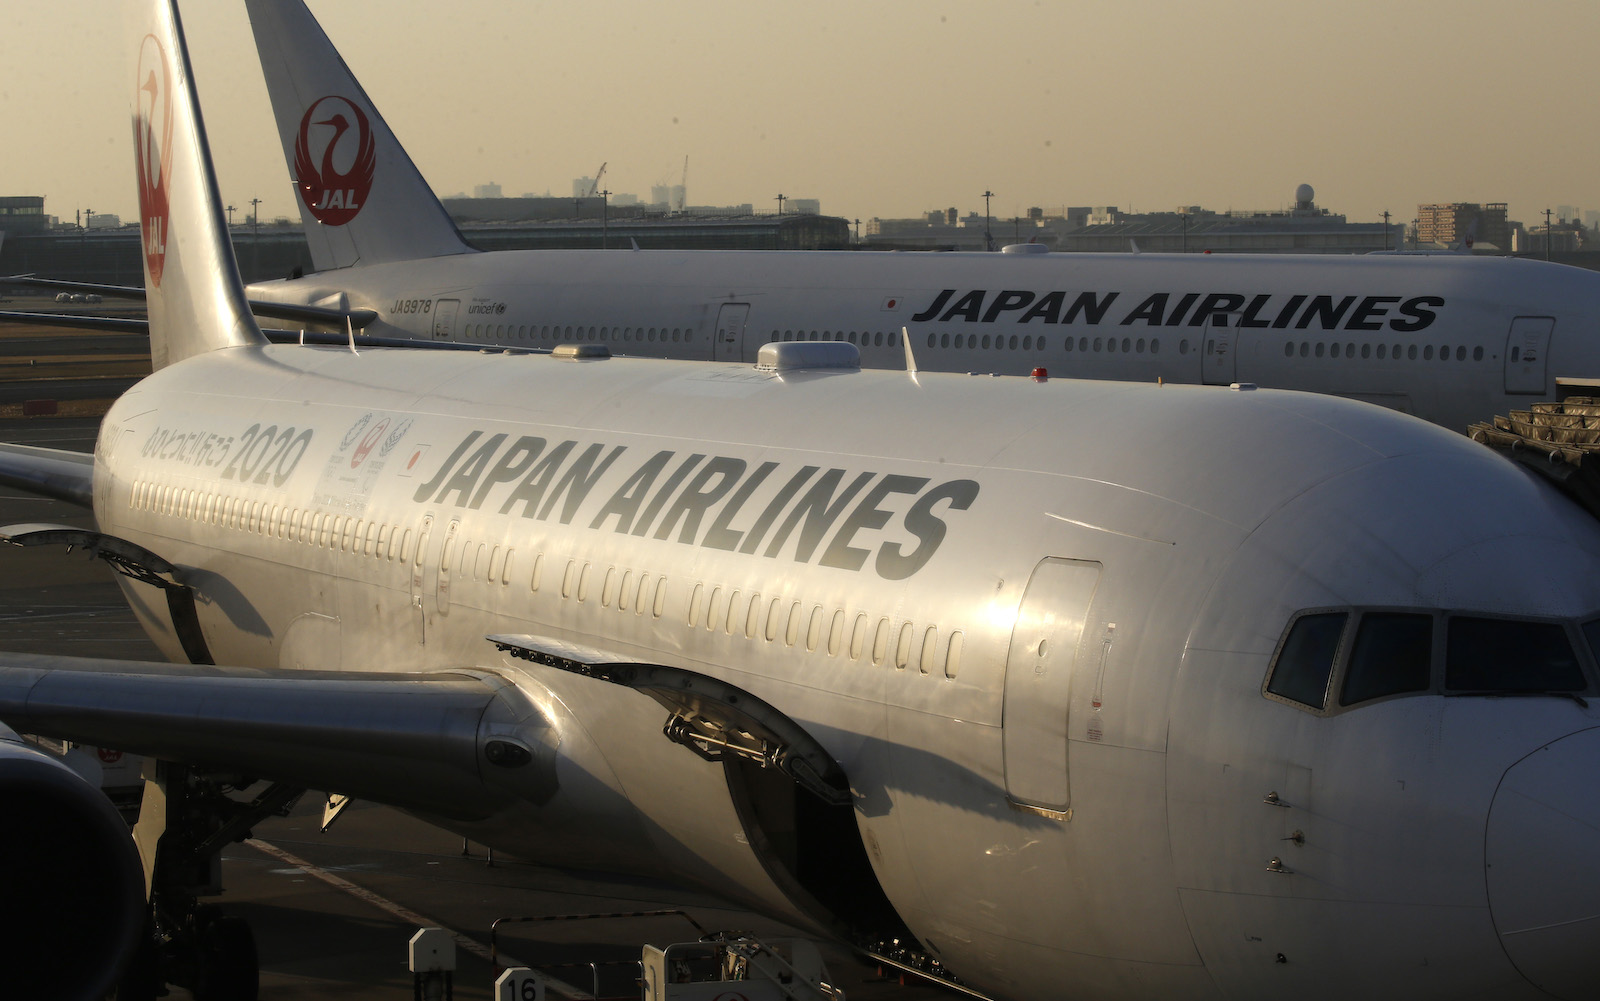 Japan Airlines Asks Employees to Stop Drinking Alcohol for the Rest of 2018